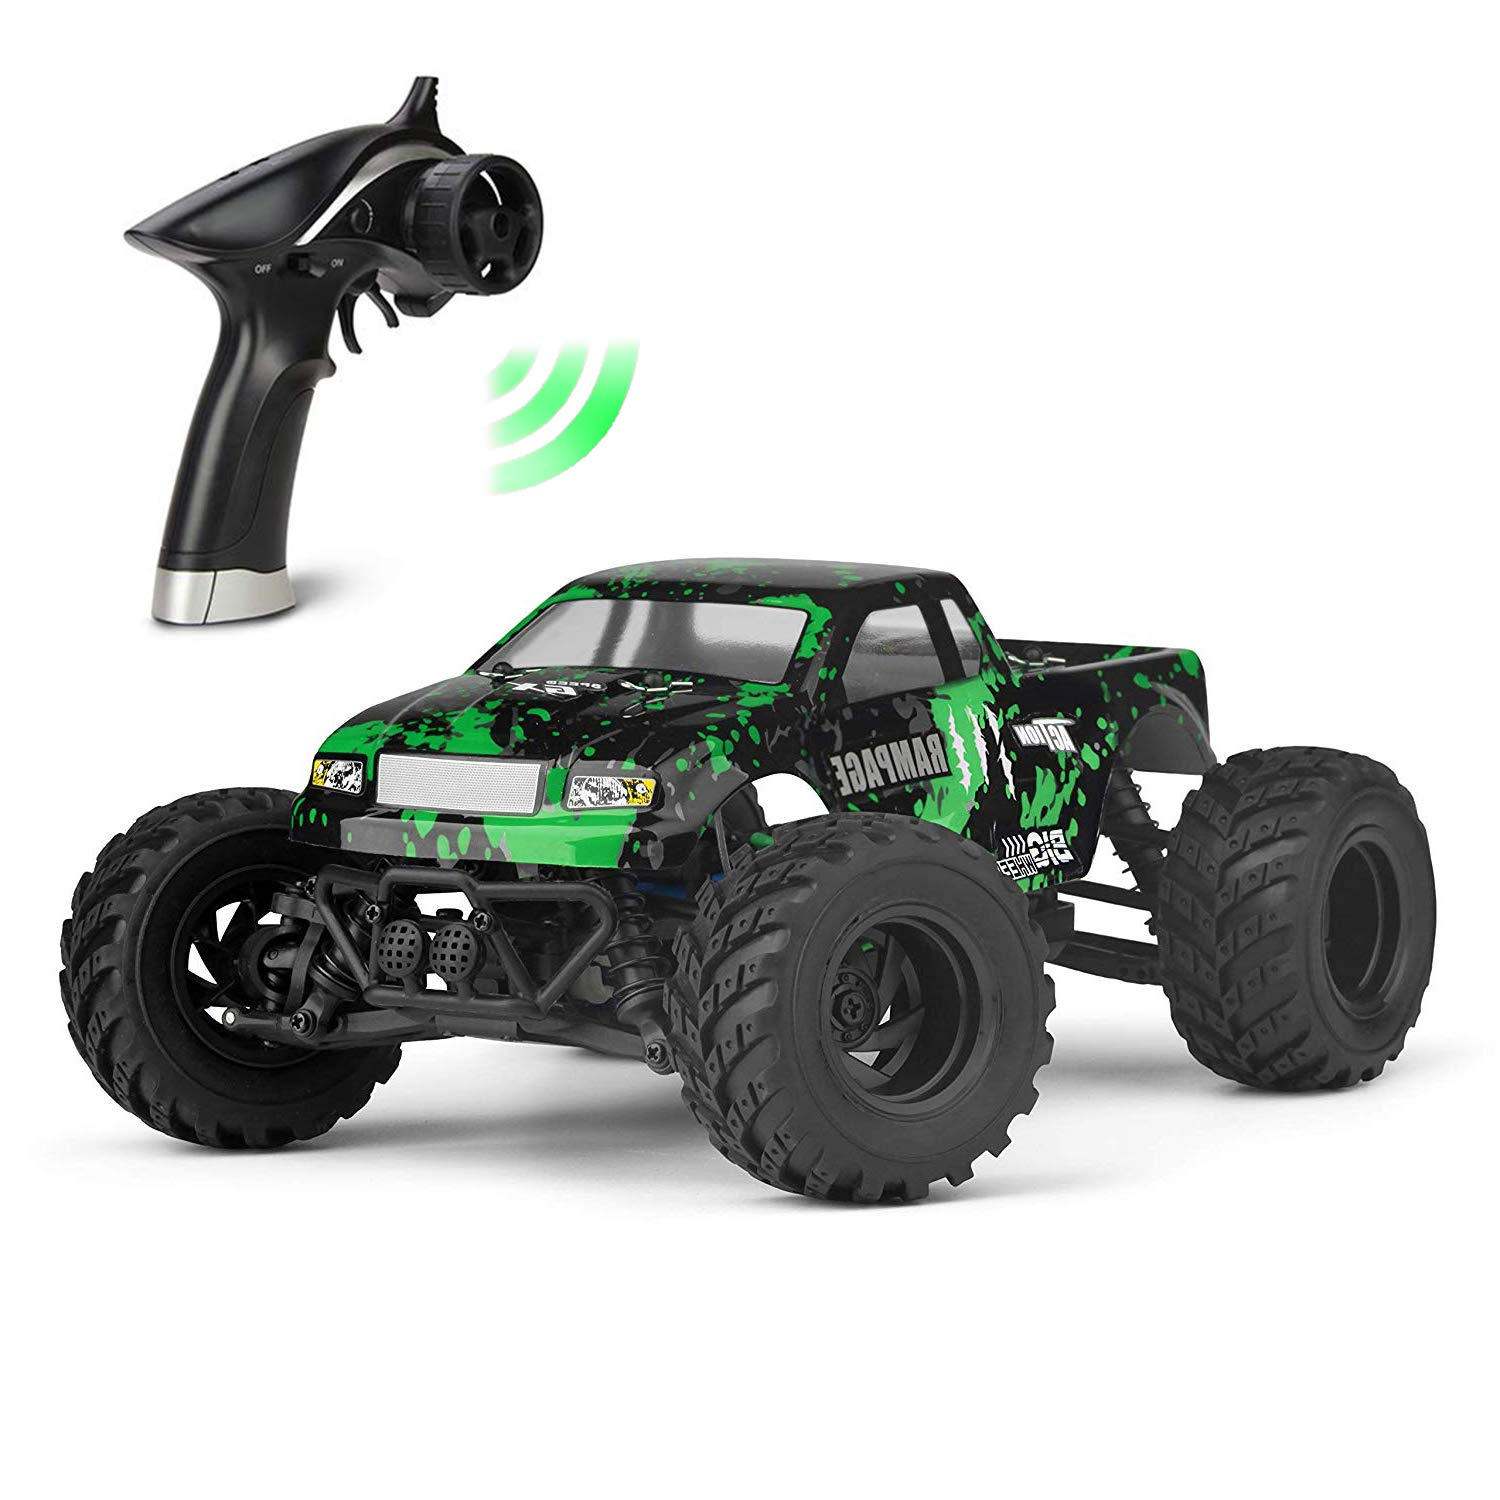 HAIBOXING RC Cars 1/18 Scale 30+MPH High Speed 4WD Electric Vehicle,2.4 GHz Remote-Controlled Electric All Terrain Waterproof Vehicles with Rechargeable Battery for Kids and Adults RTR (Green)